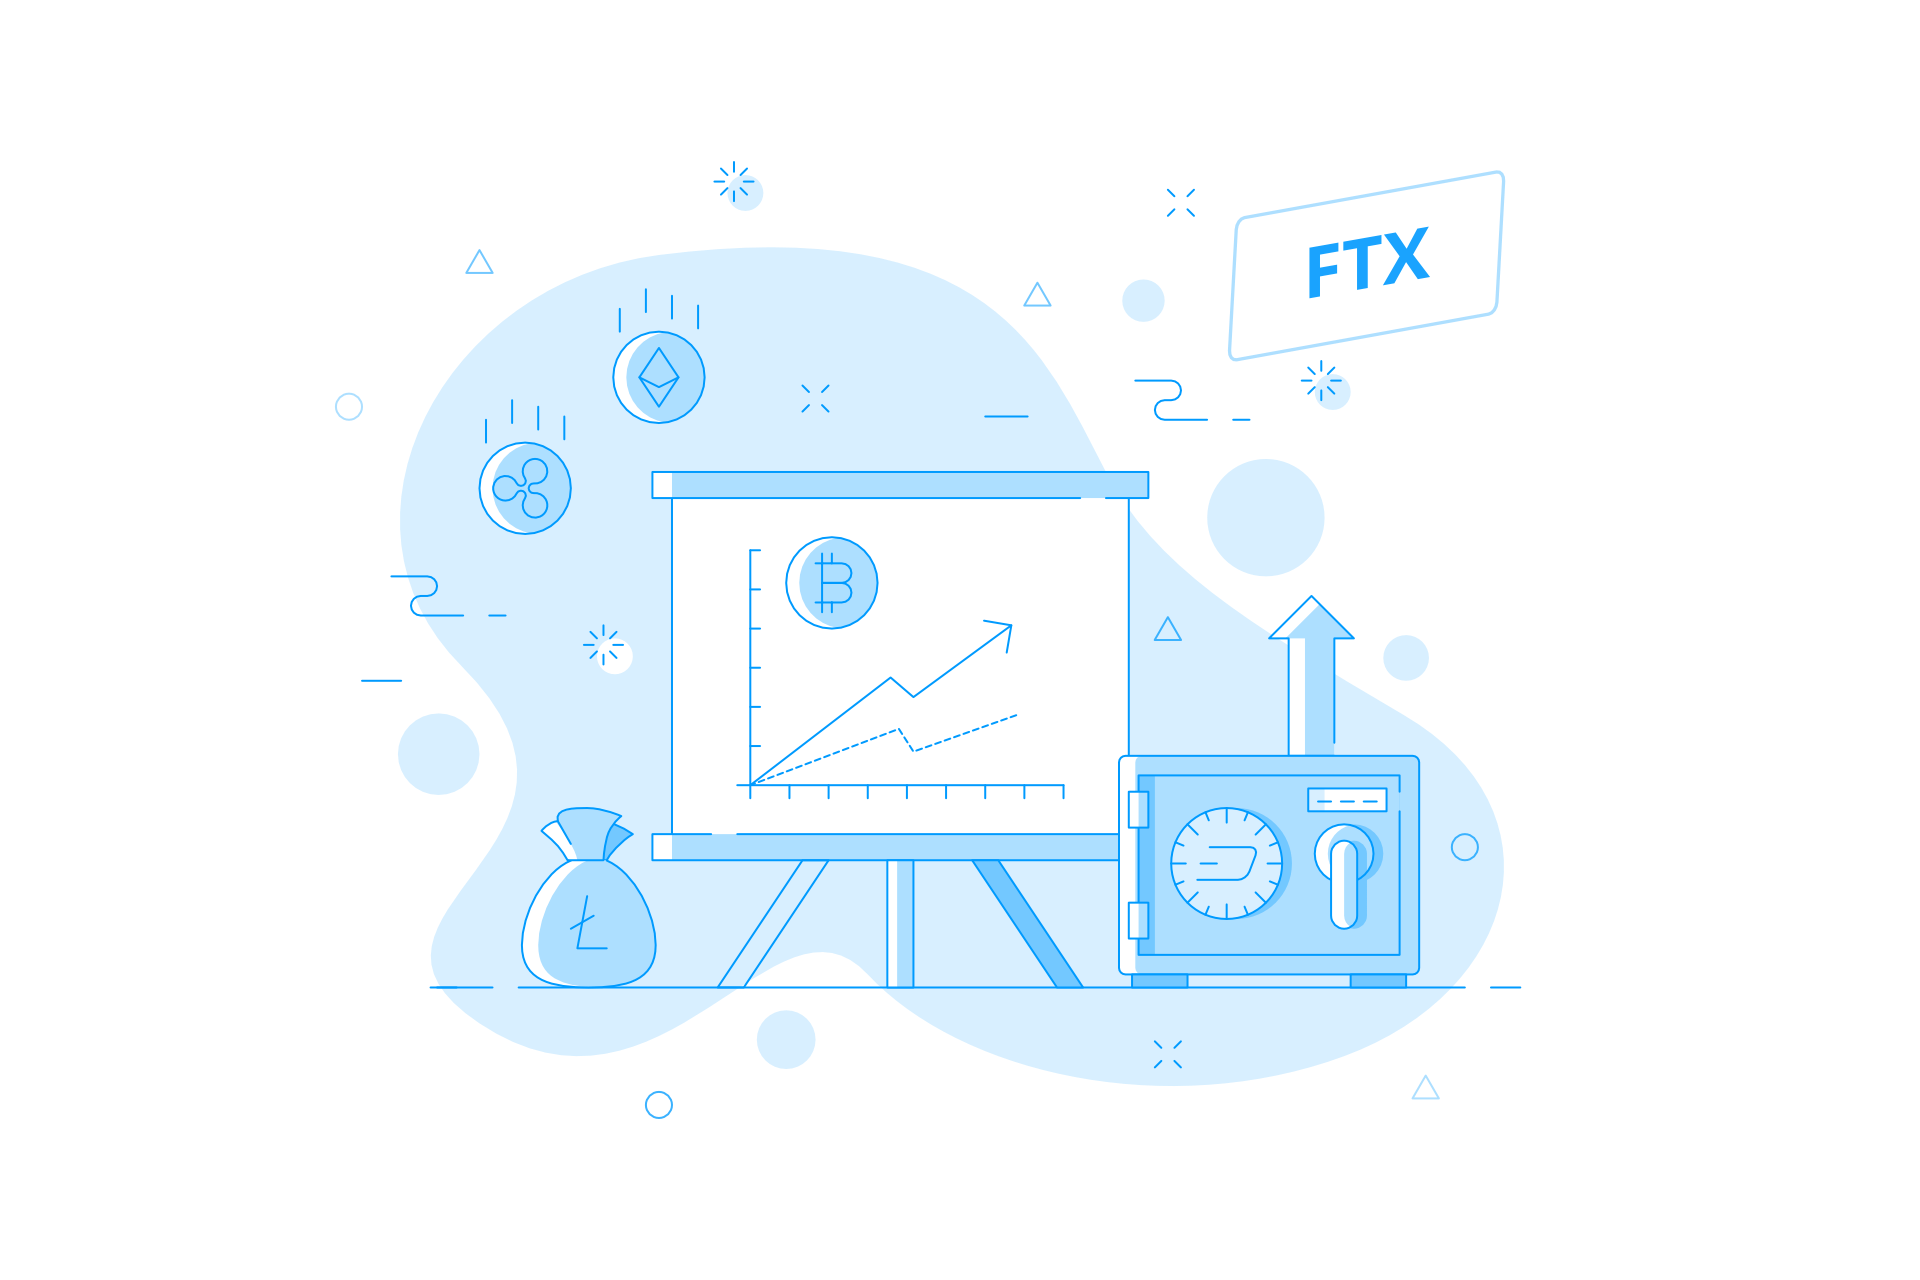 ftx crypto exchange